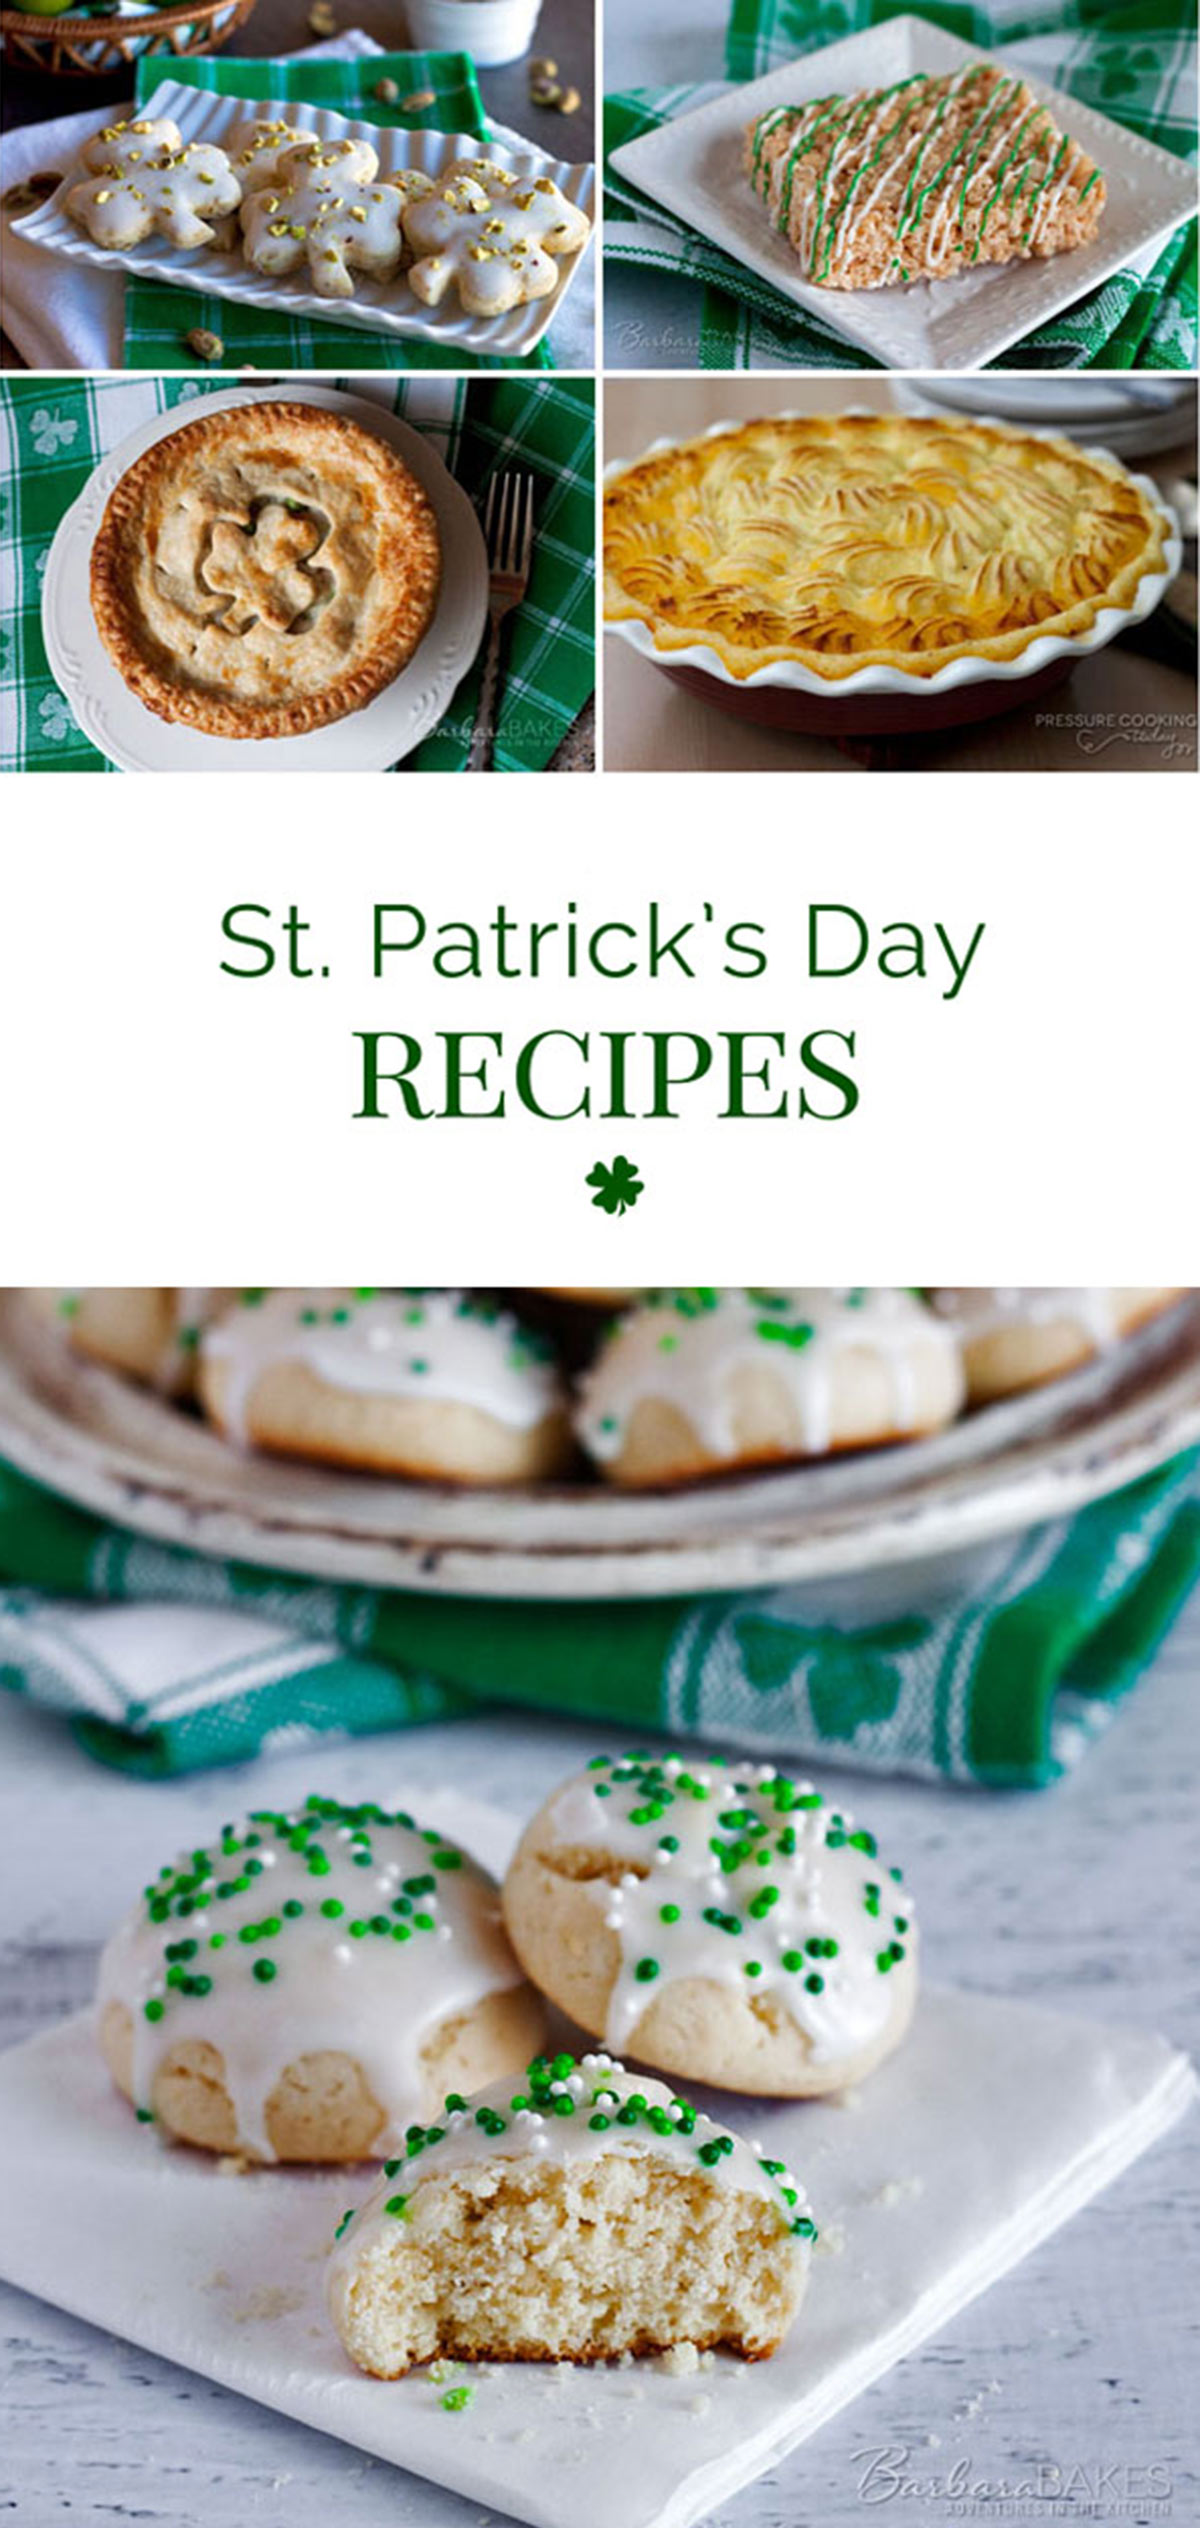 A collage Shepherd\'s pie, chicken pot pie with a clover in the crust, Italian cookies with green sprinkles, and clover shortbread cookies